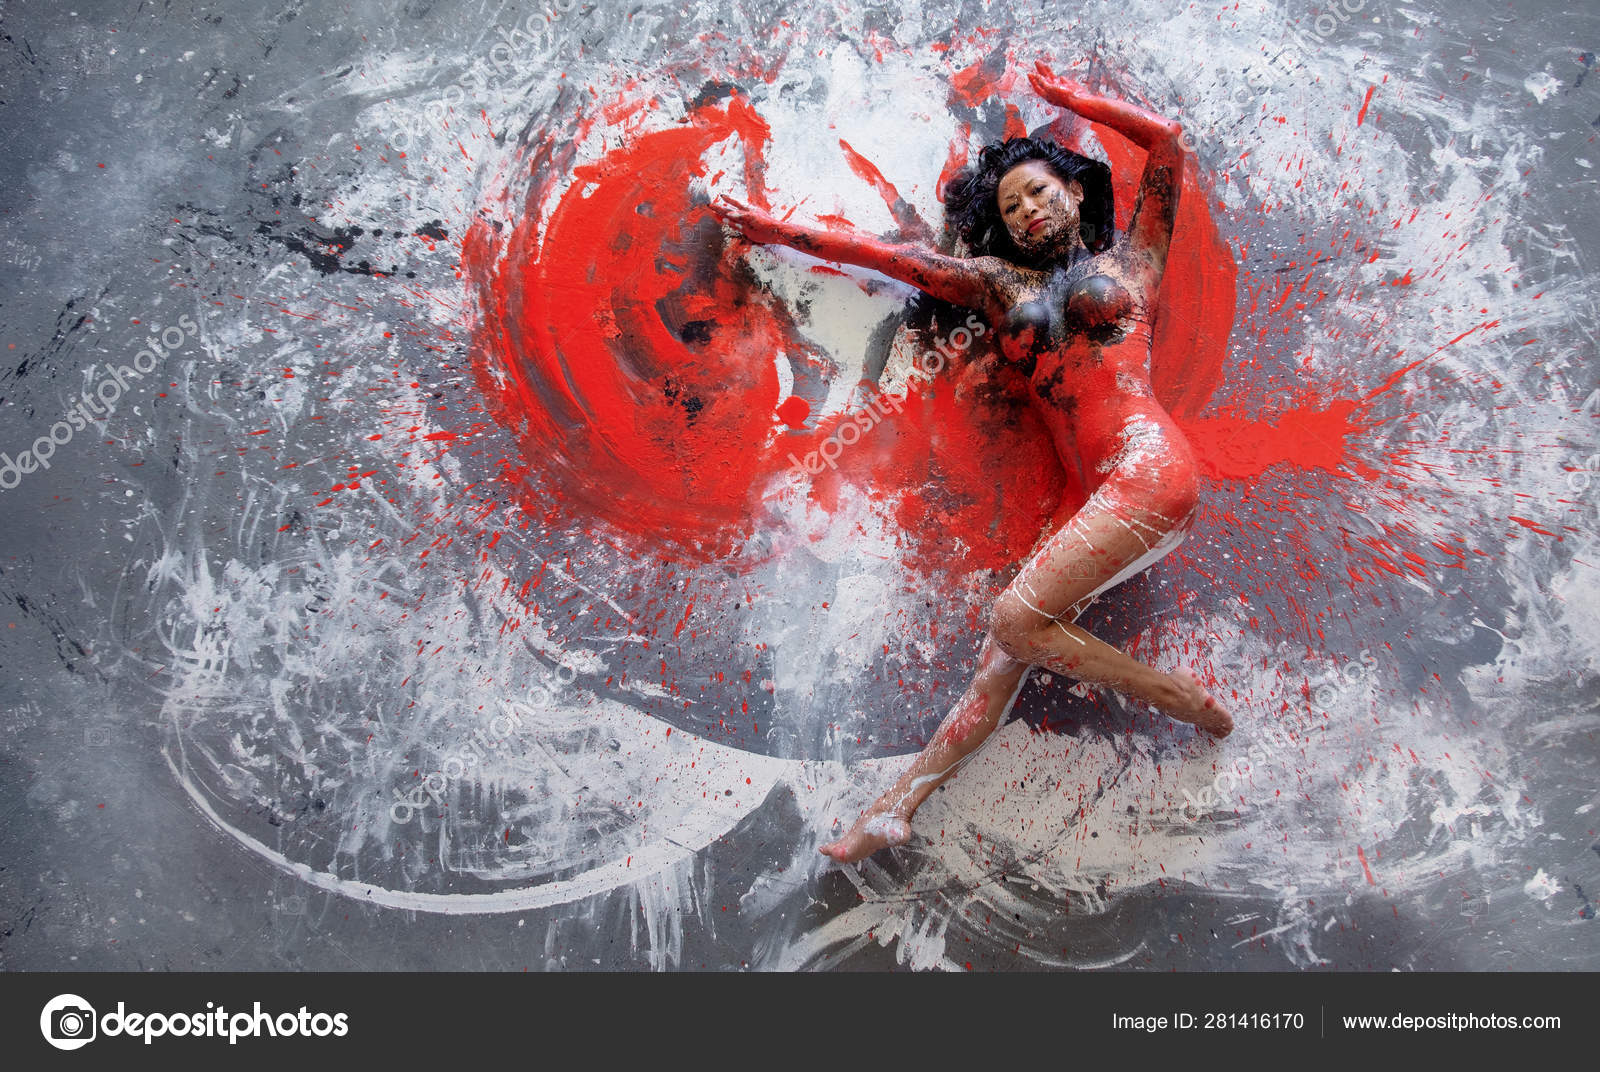 Young Nude Artistic Woman In Red Black And White Paint Lies Dancing On The Ground Creative Abstract Body Art Colorful Painting Stock Photo C Ullision 281416170